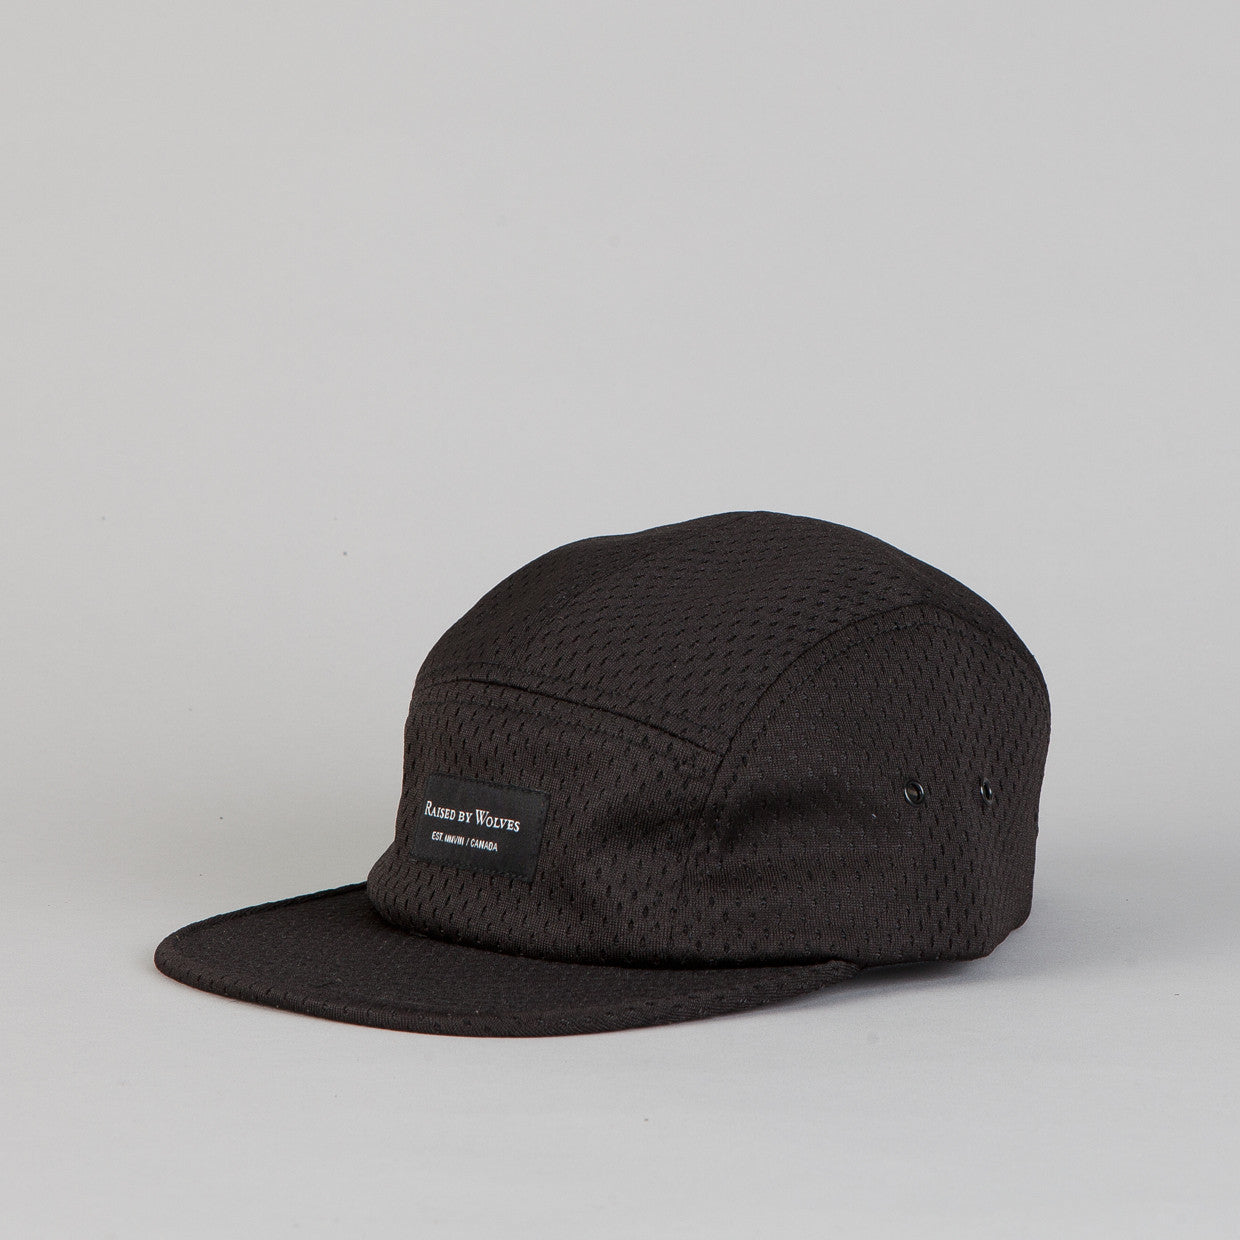 Raised By Wolves Algonquin 5 panel Cap Pro-Style Mesh Black